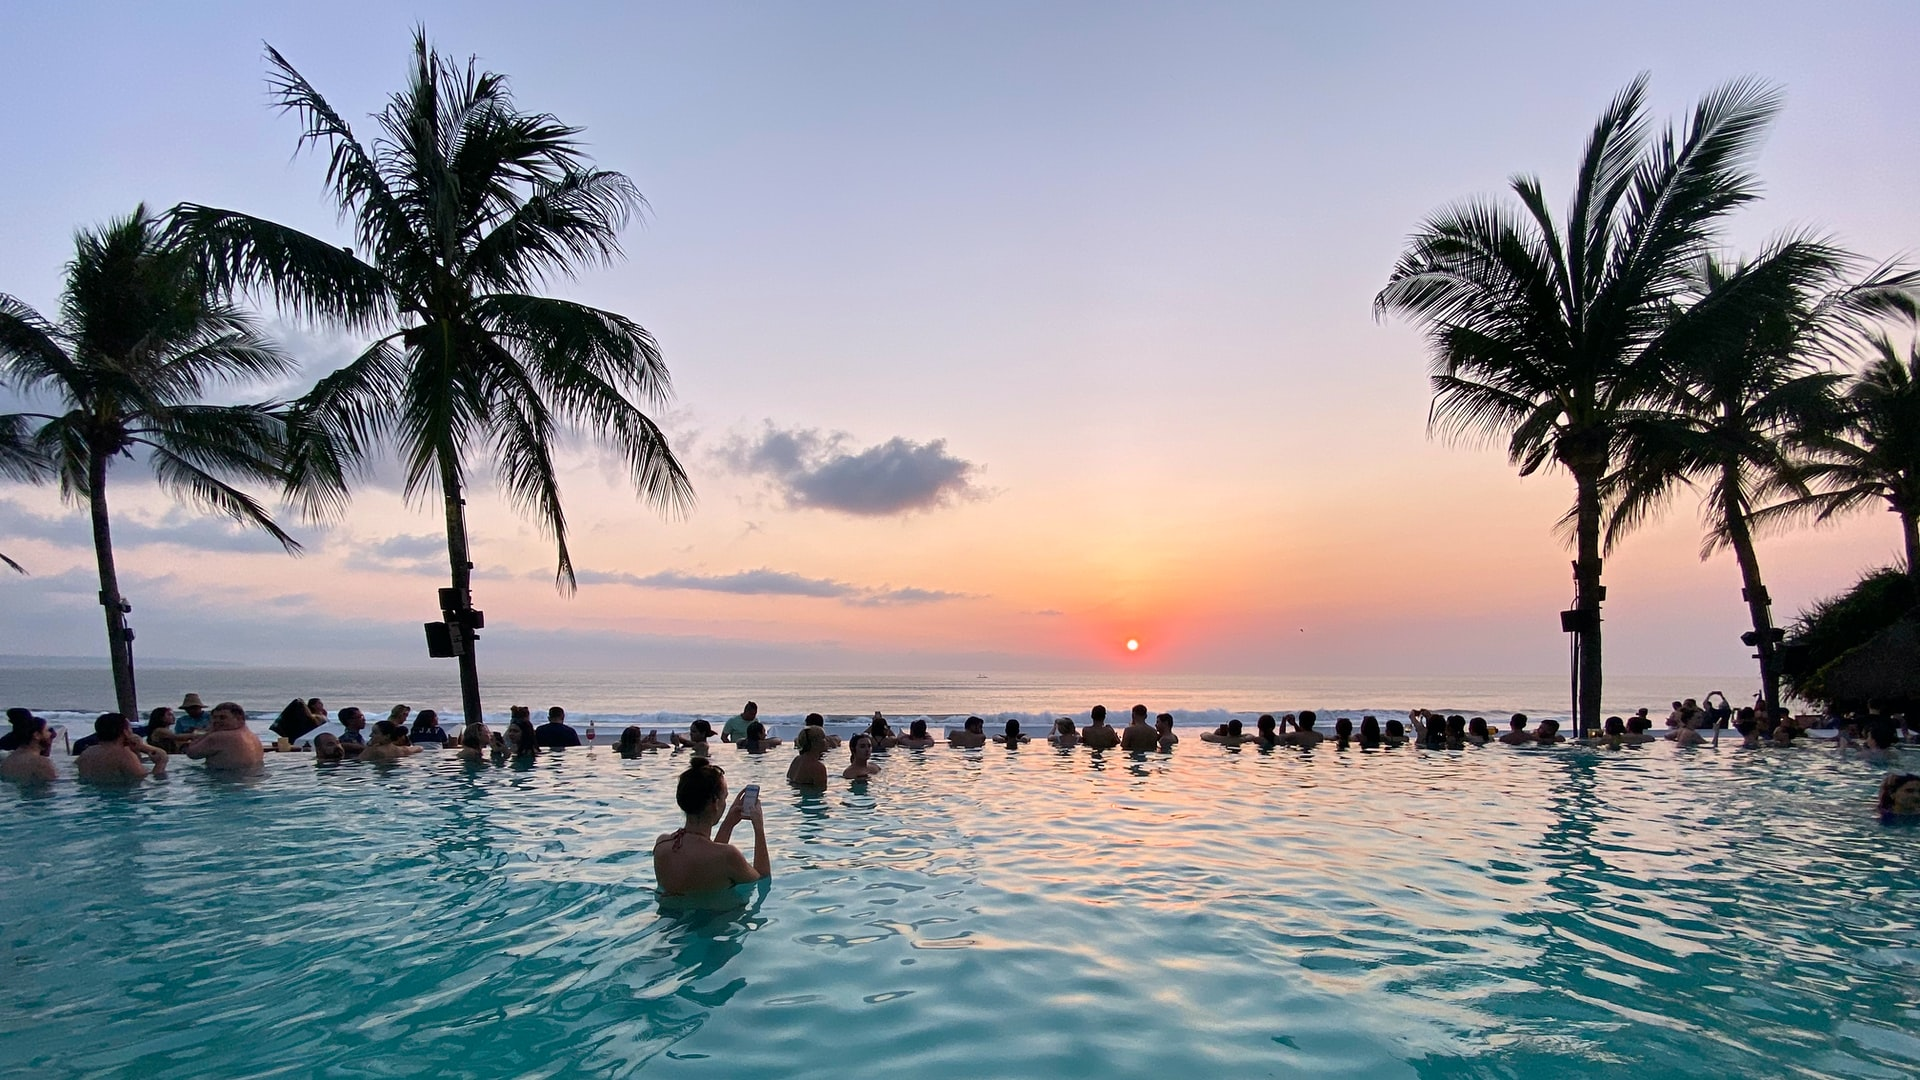 Bali Officials Expect Up To 1500 Daily Visitors After Reopening